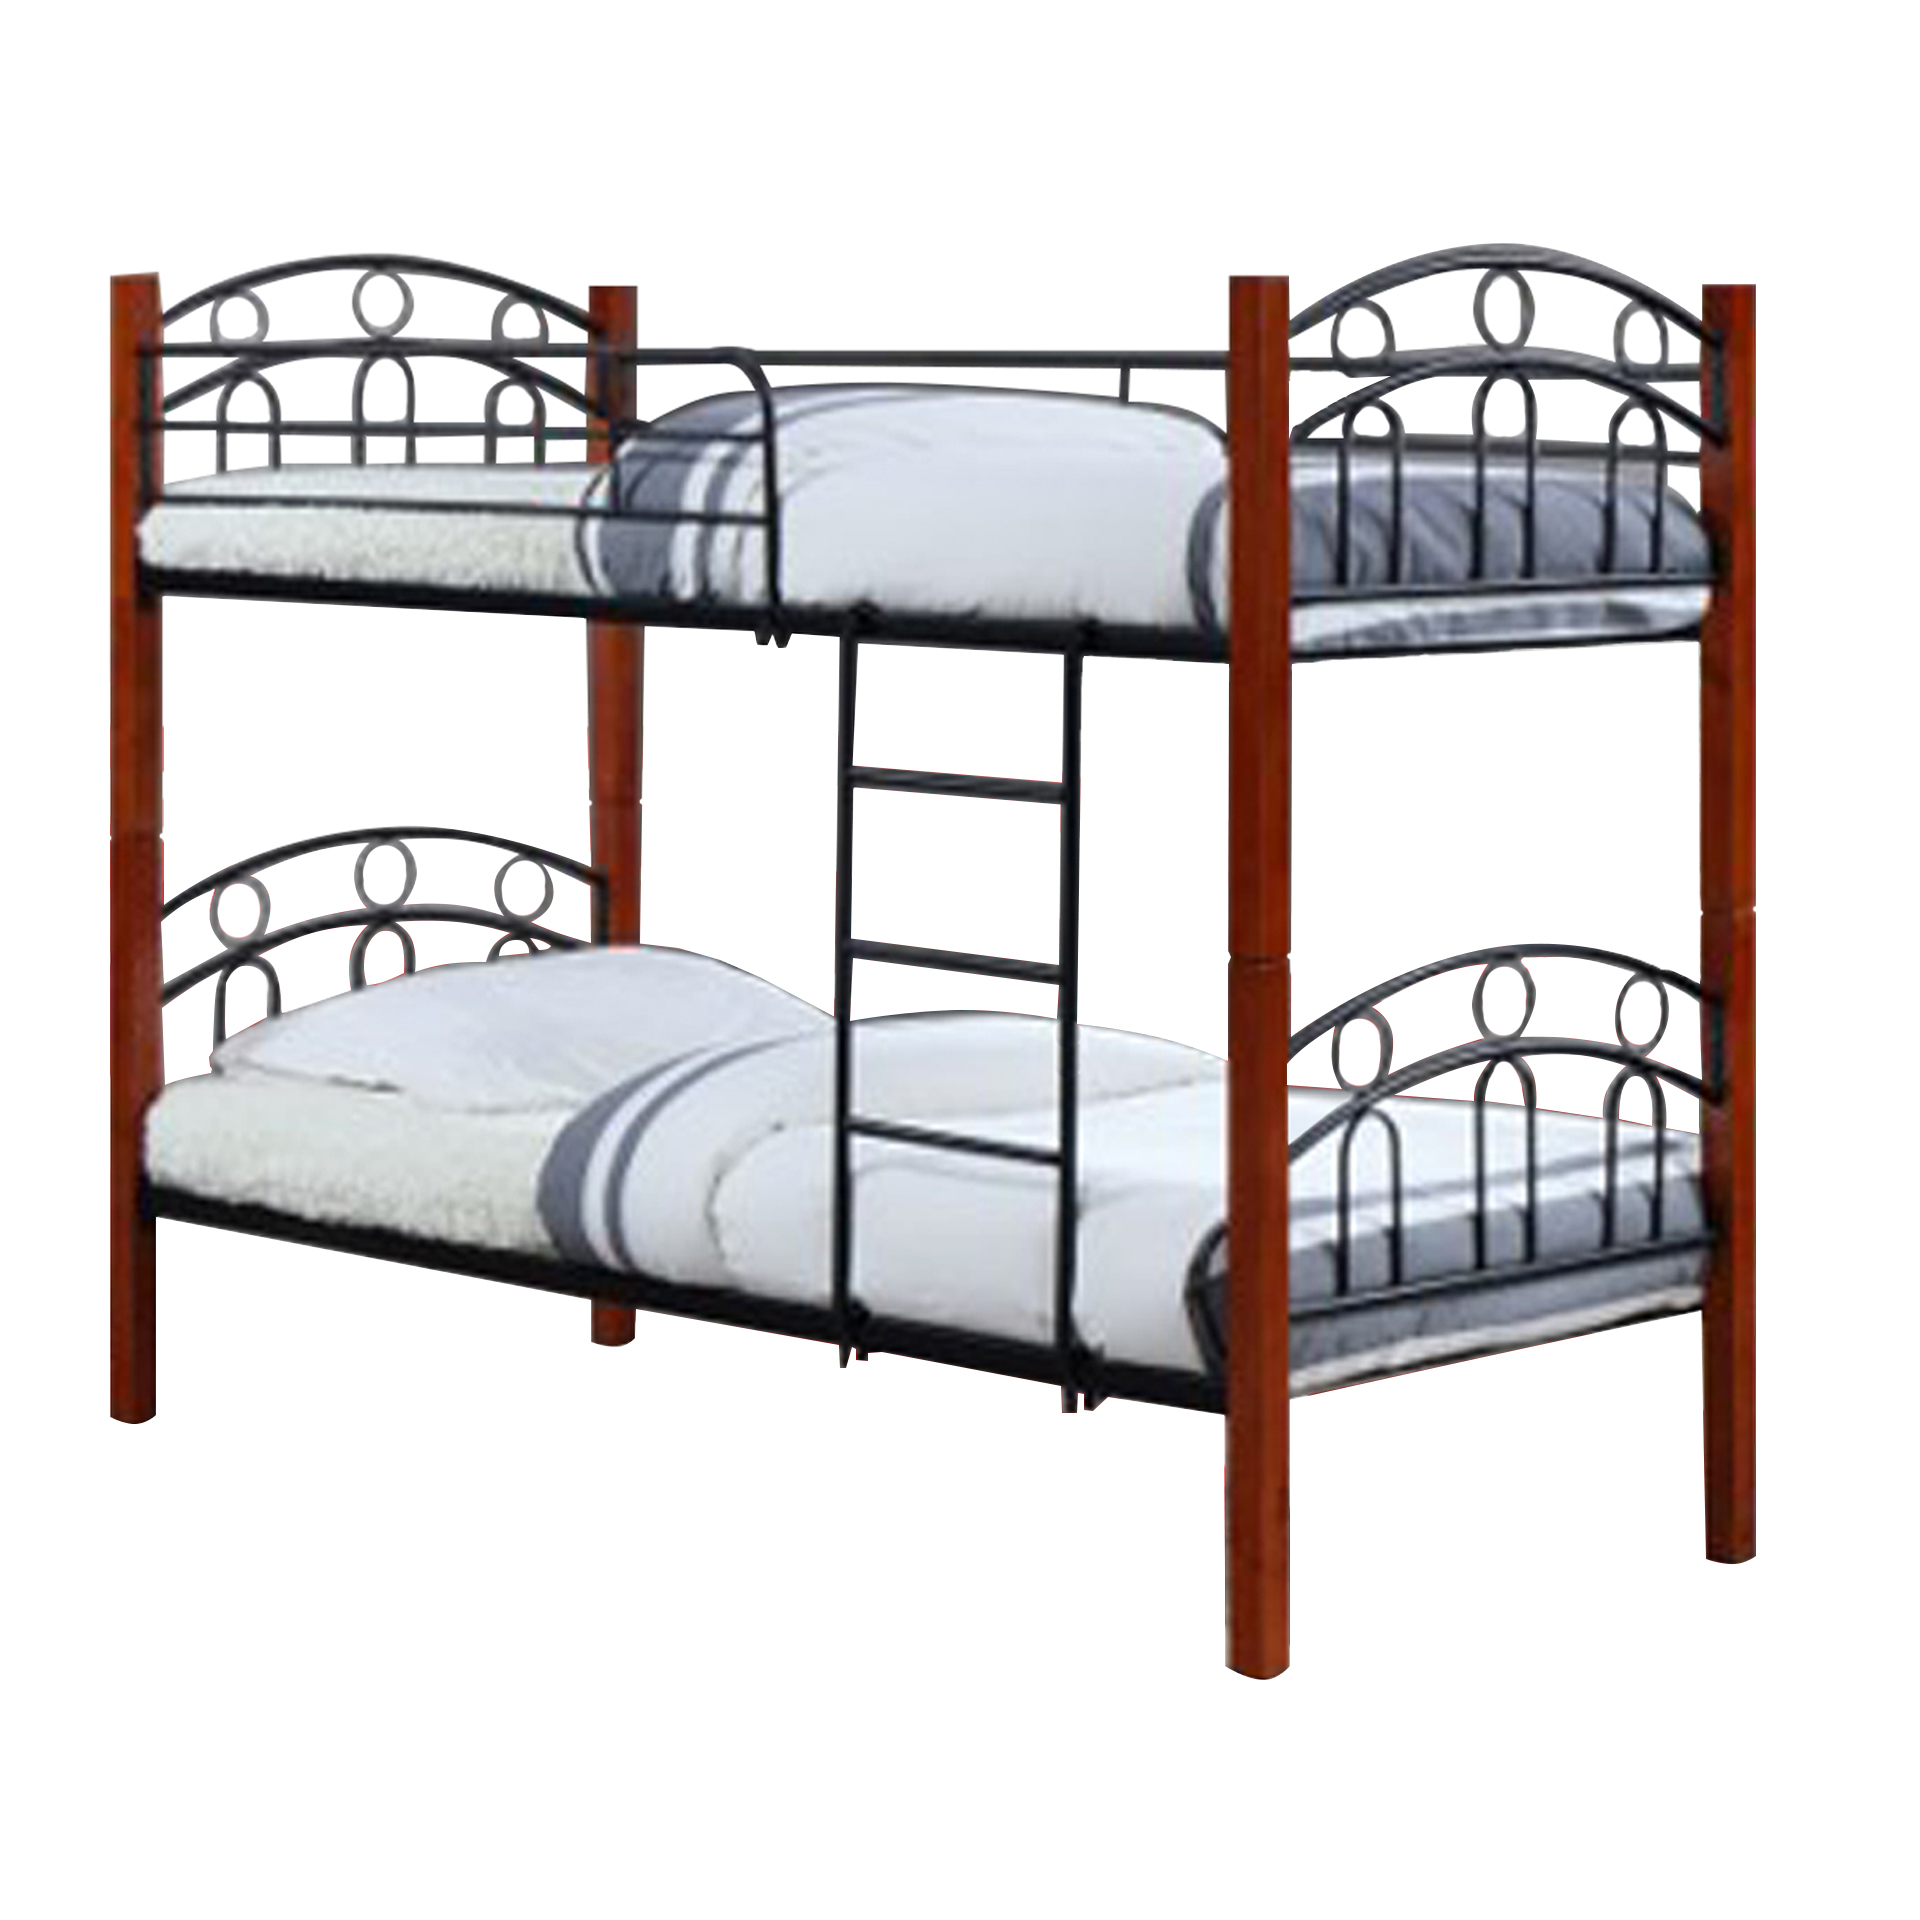 Astoria Double Deck Bed - Hapihomes